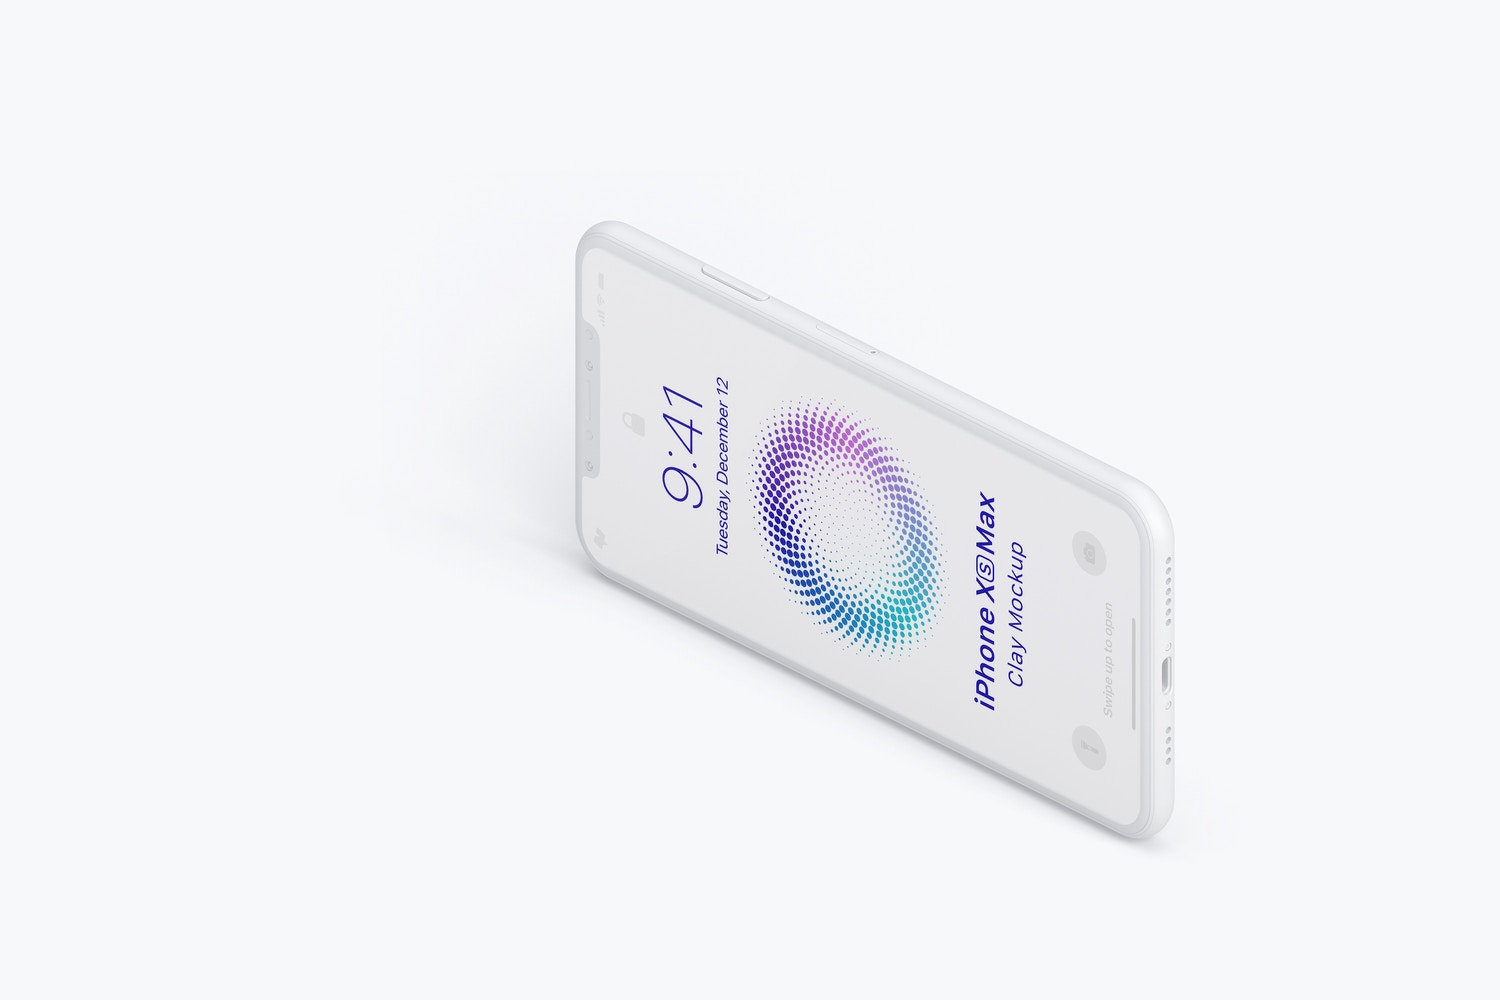 Isometric Clay iPhone XS Max Mockup, Right View 03 by Original Mockups on Original Mockups